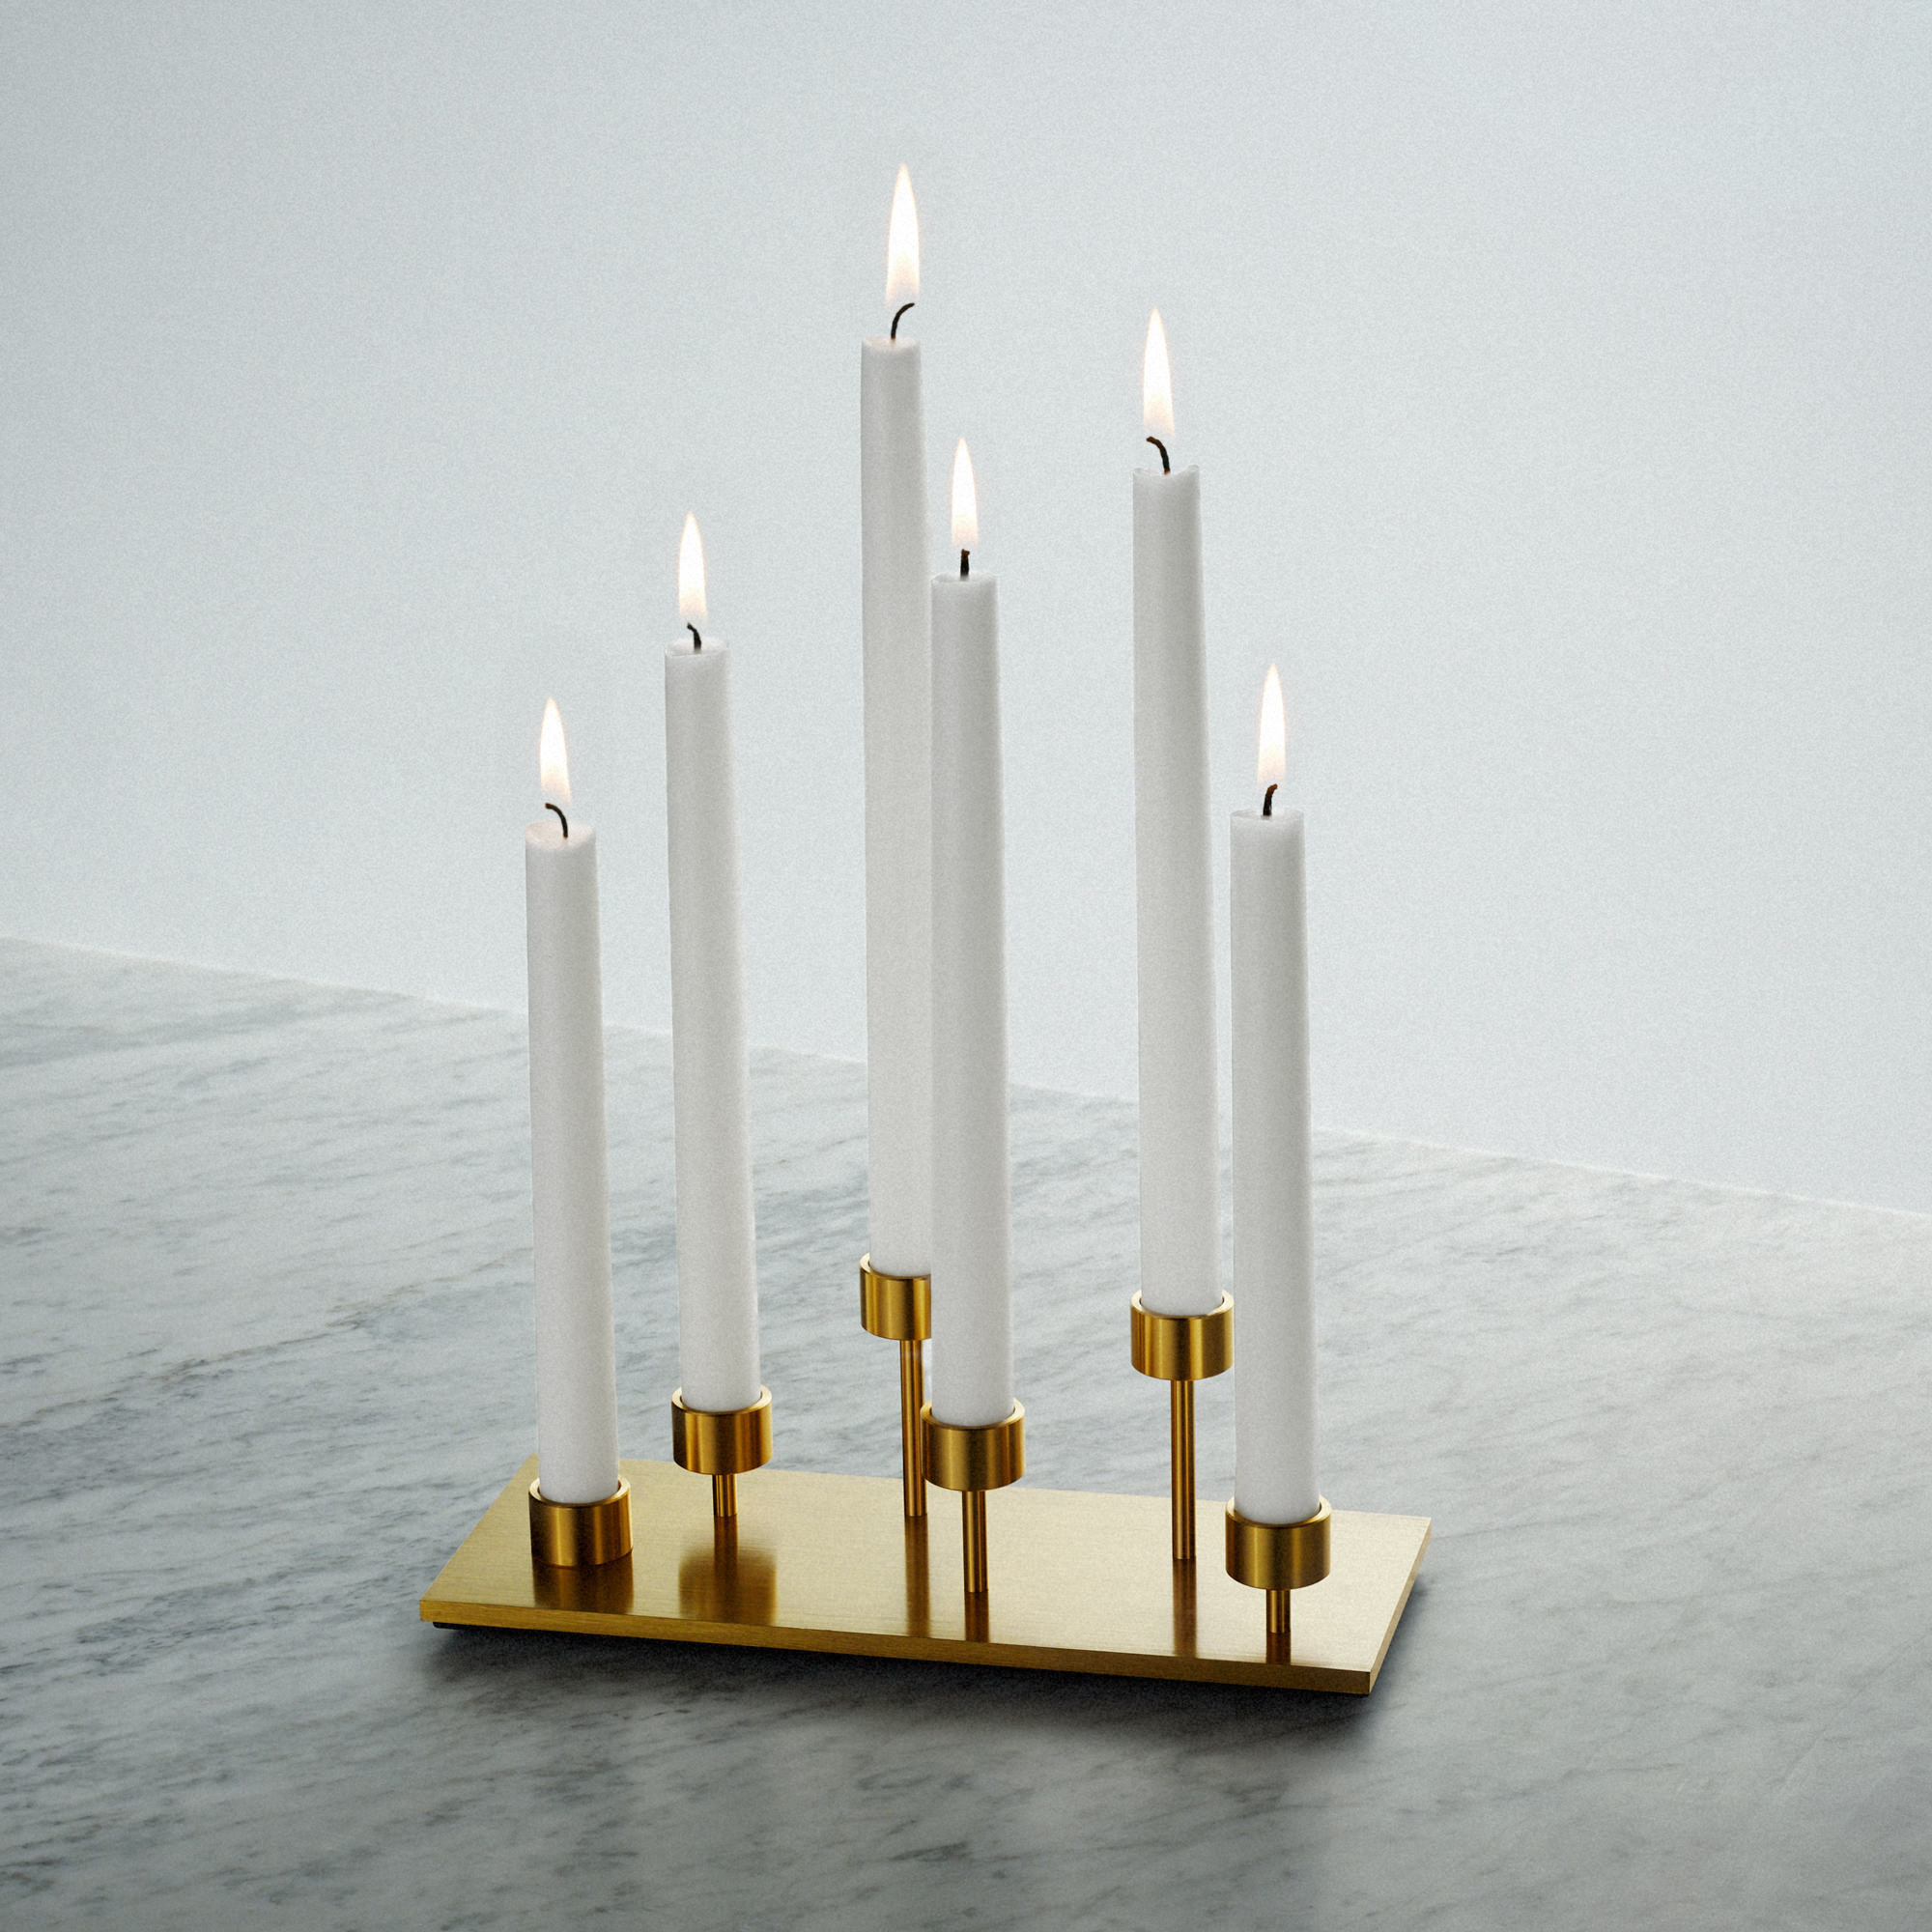 Buster + Punch / Candelabra candle holder made in solid brass / interior design details / perfect gift